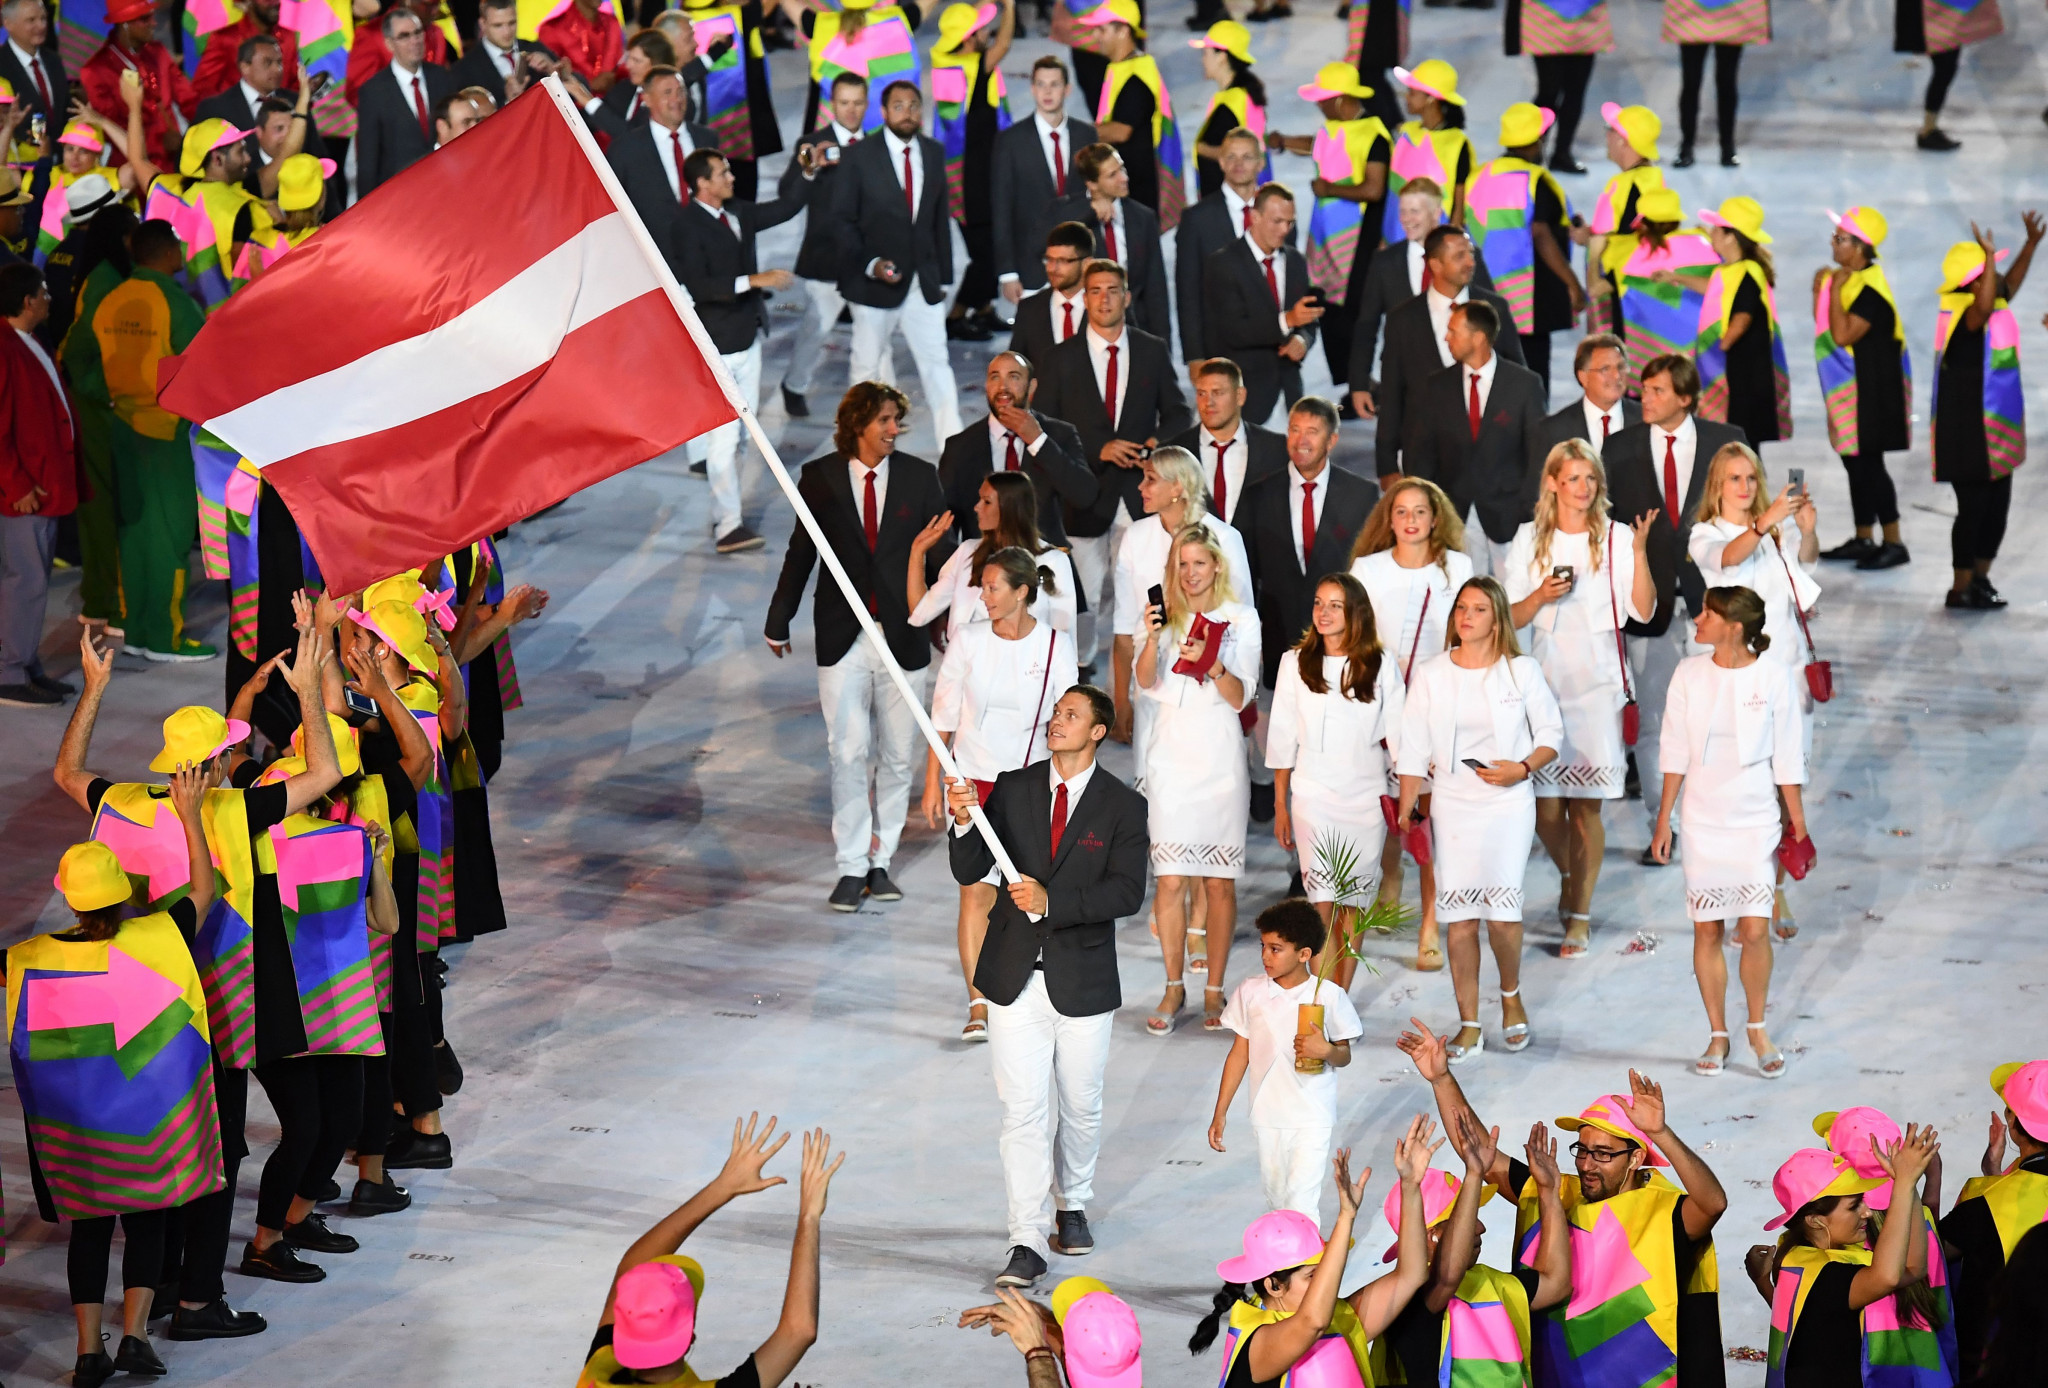 The Latvian Olympic Committee will soon have a new President ©Getty Images